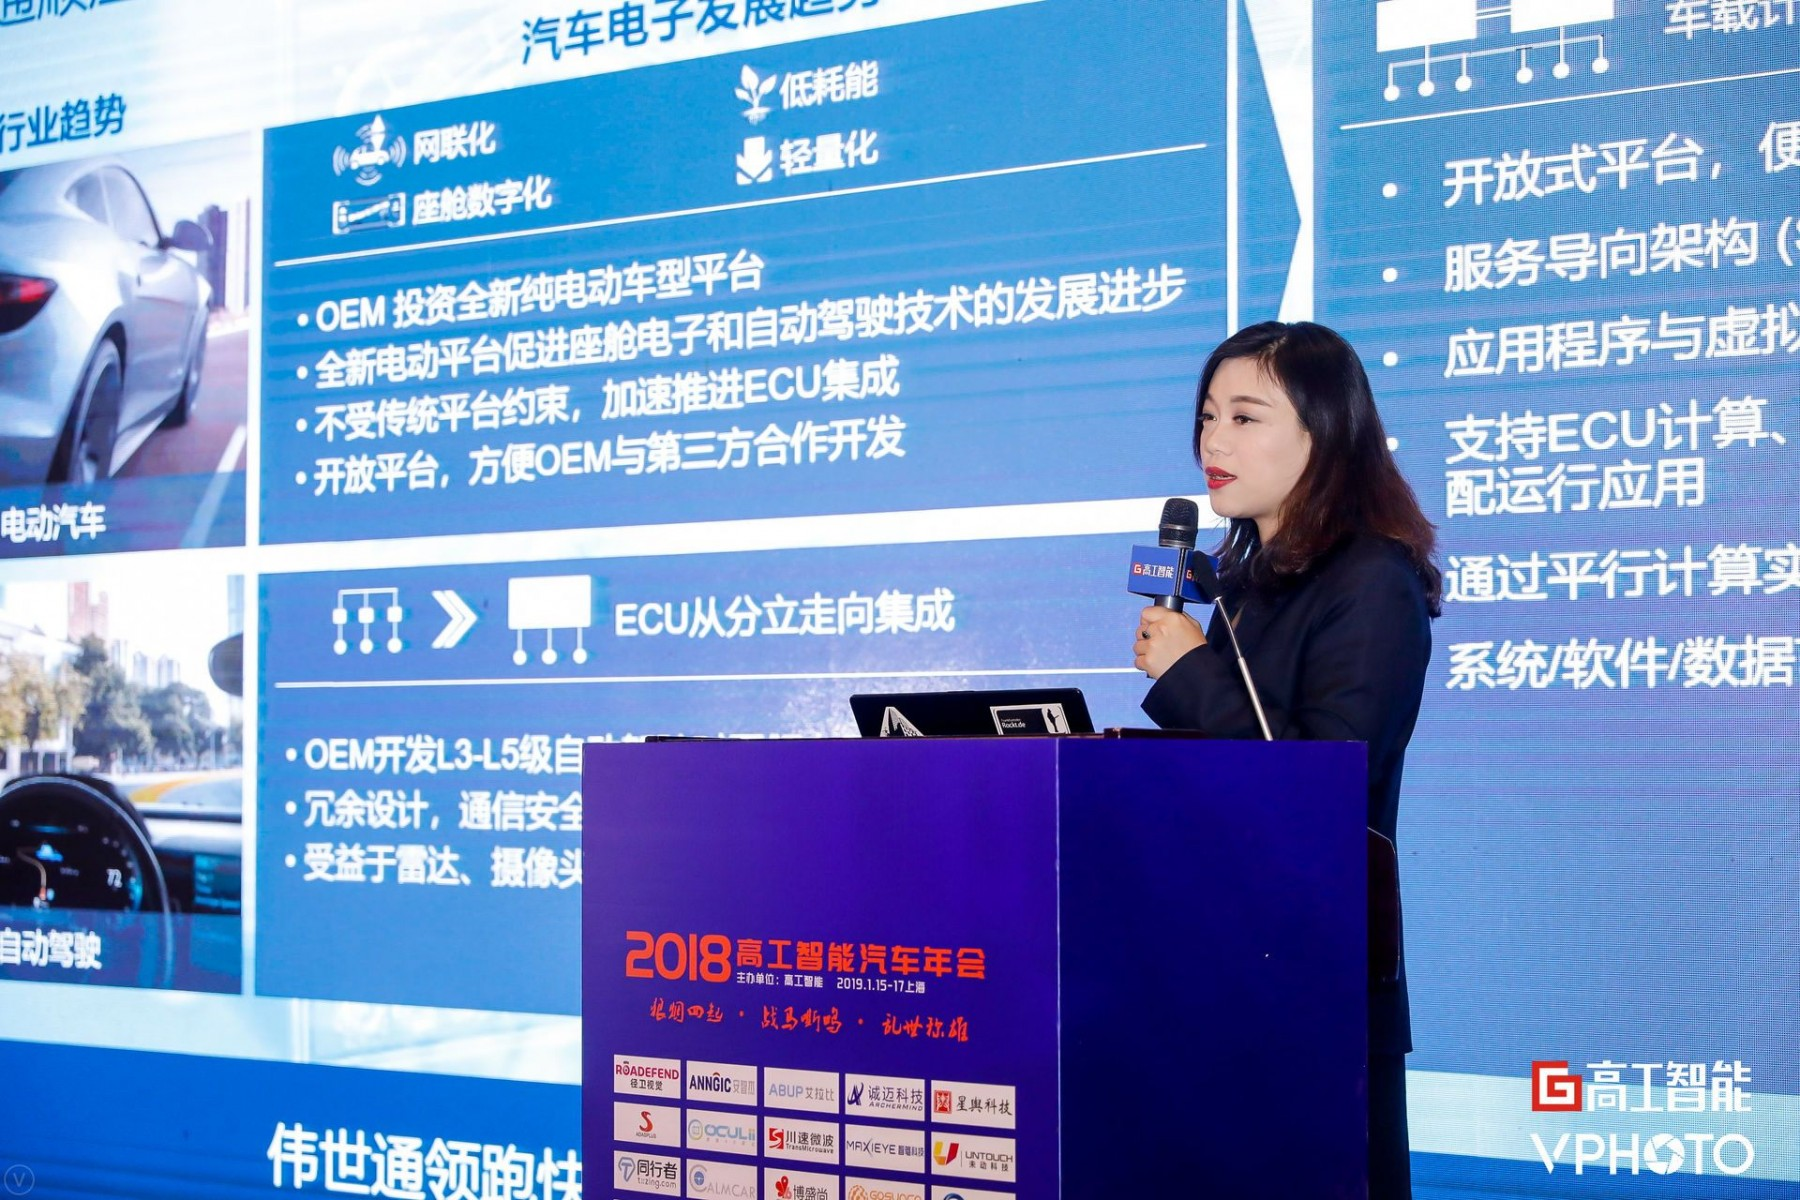 Lily Cai presents to industry peers at the GGAI summit in Shanghai